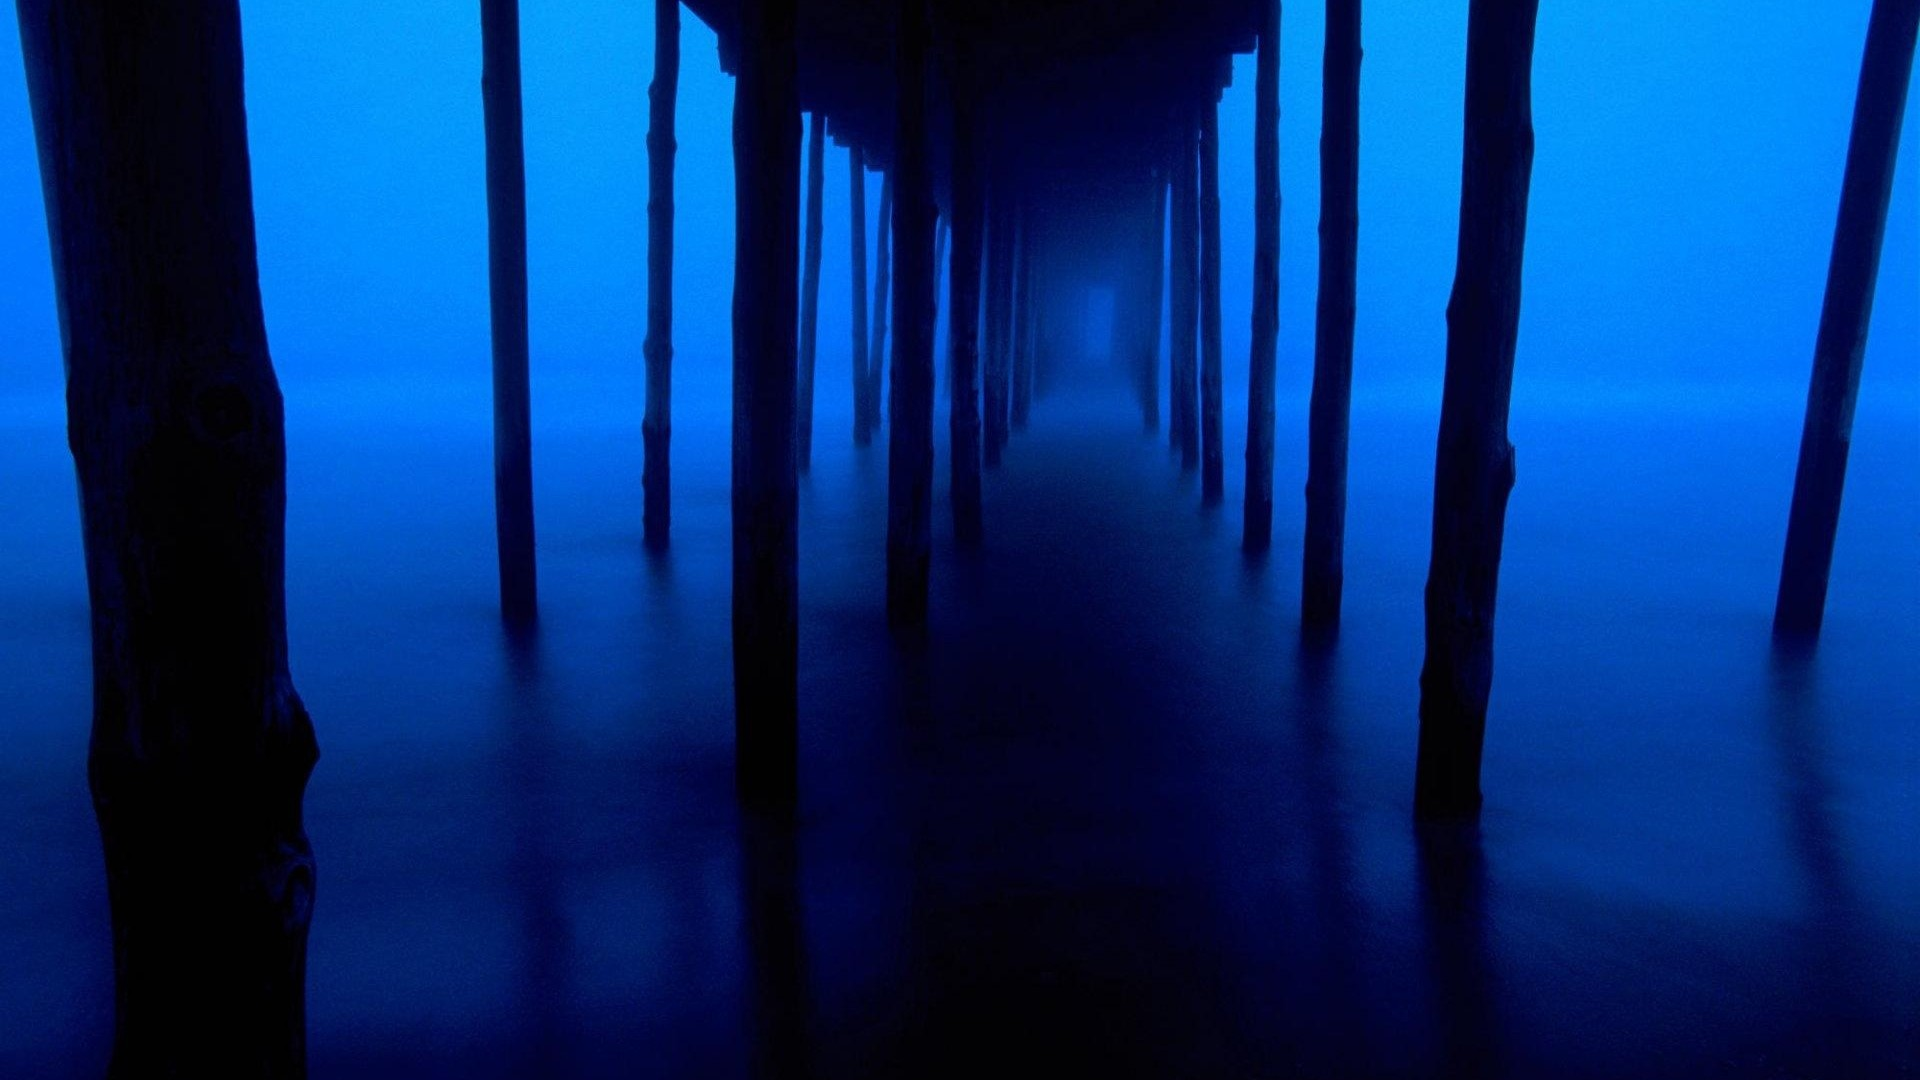 1920x1080 Preview wallpaper dark blue, support, bridge, mysterious